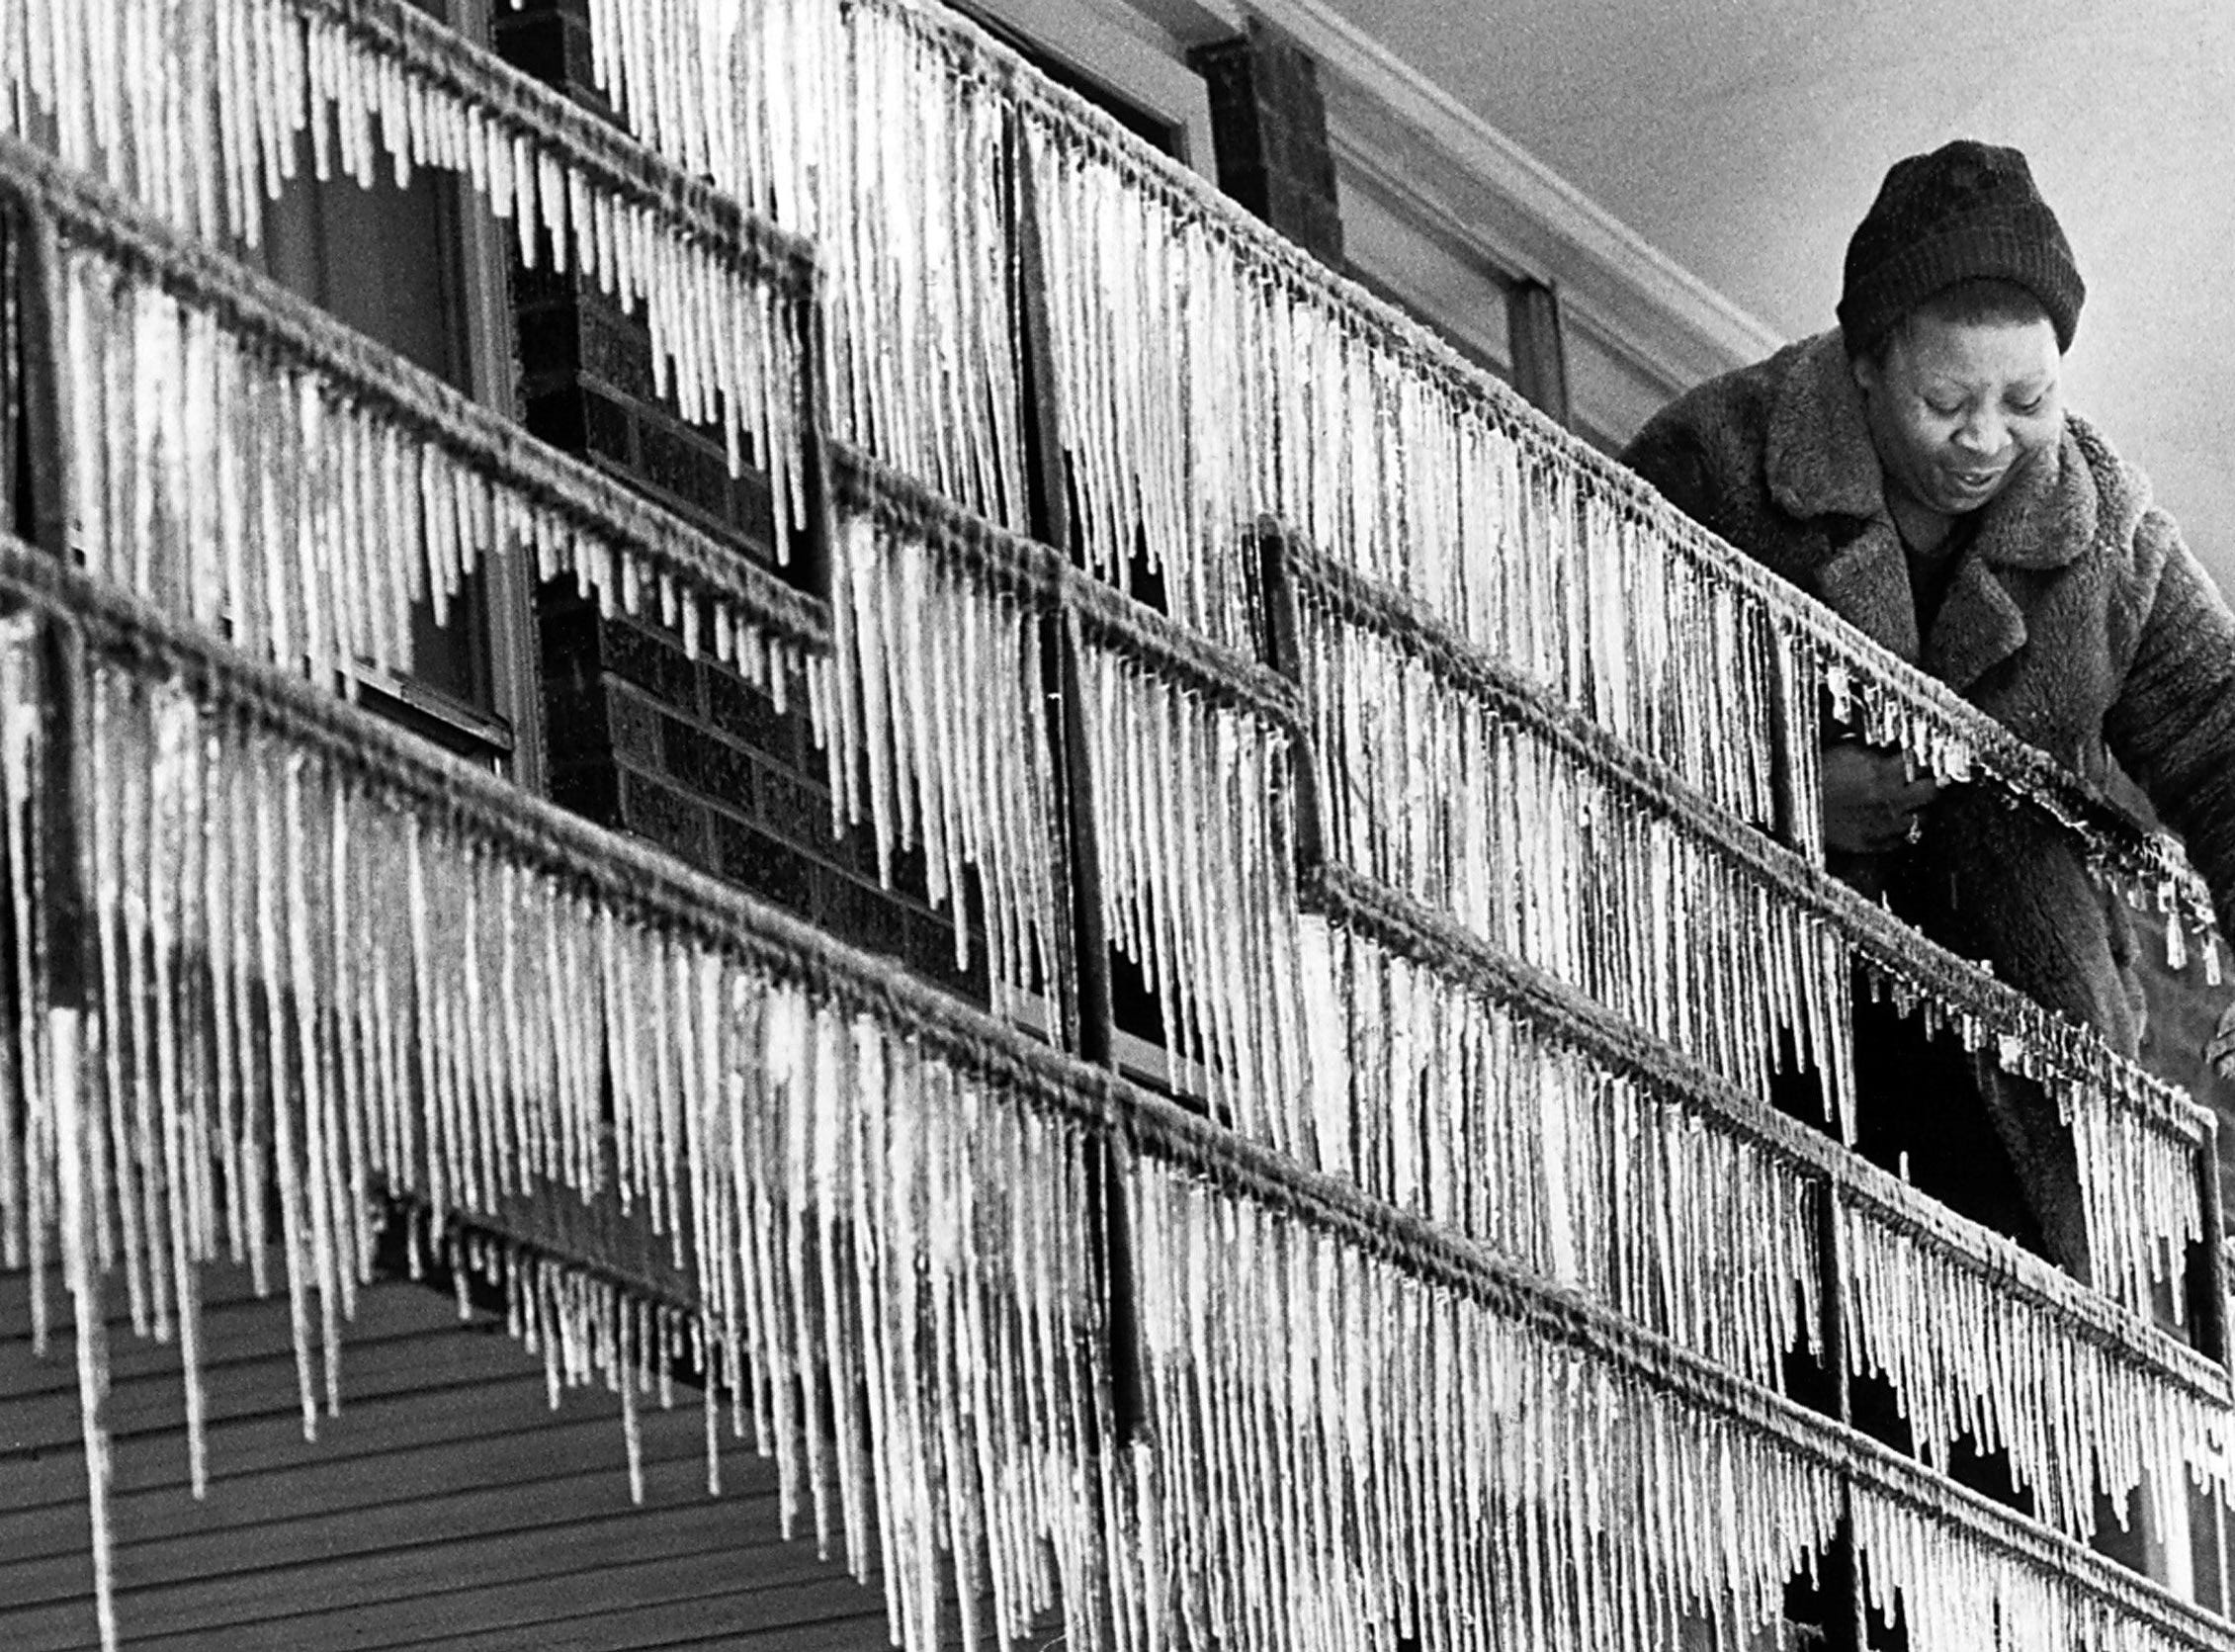 Mrs. Maude Scullark breaks icicles from the bannister at her sister's apartment on Tillman on 12 Jan 1978. She lives in southwest Memphis, but was stranded overnight due to the icy conditions.